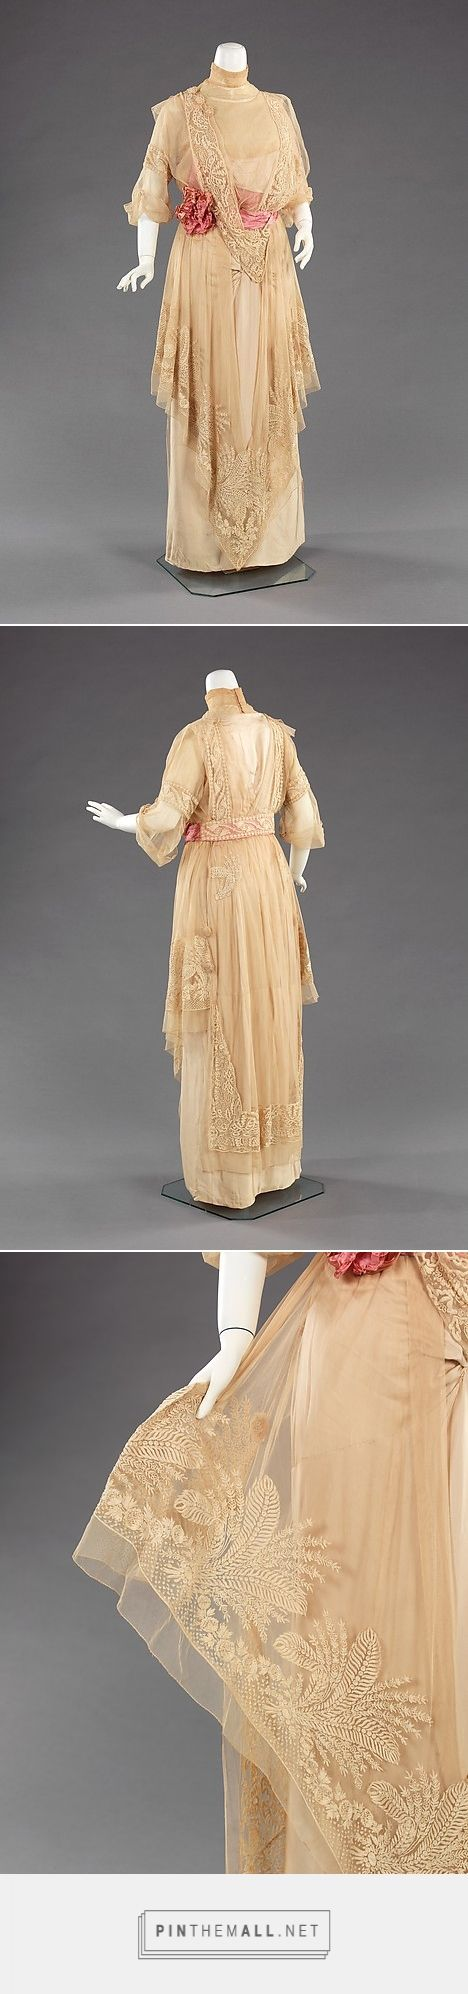 Dress by House of Paquin 1912-13 French | The Metropolitan Museum of Art